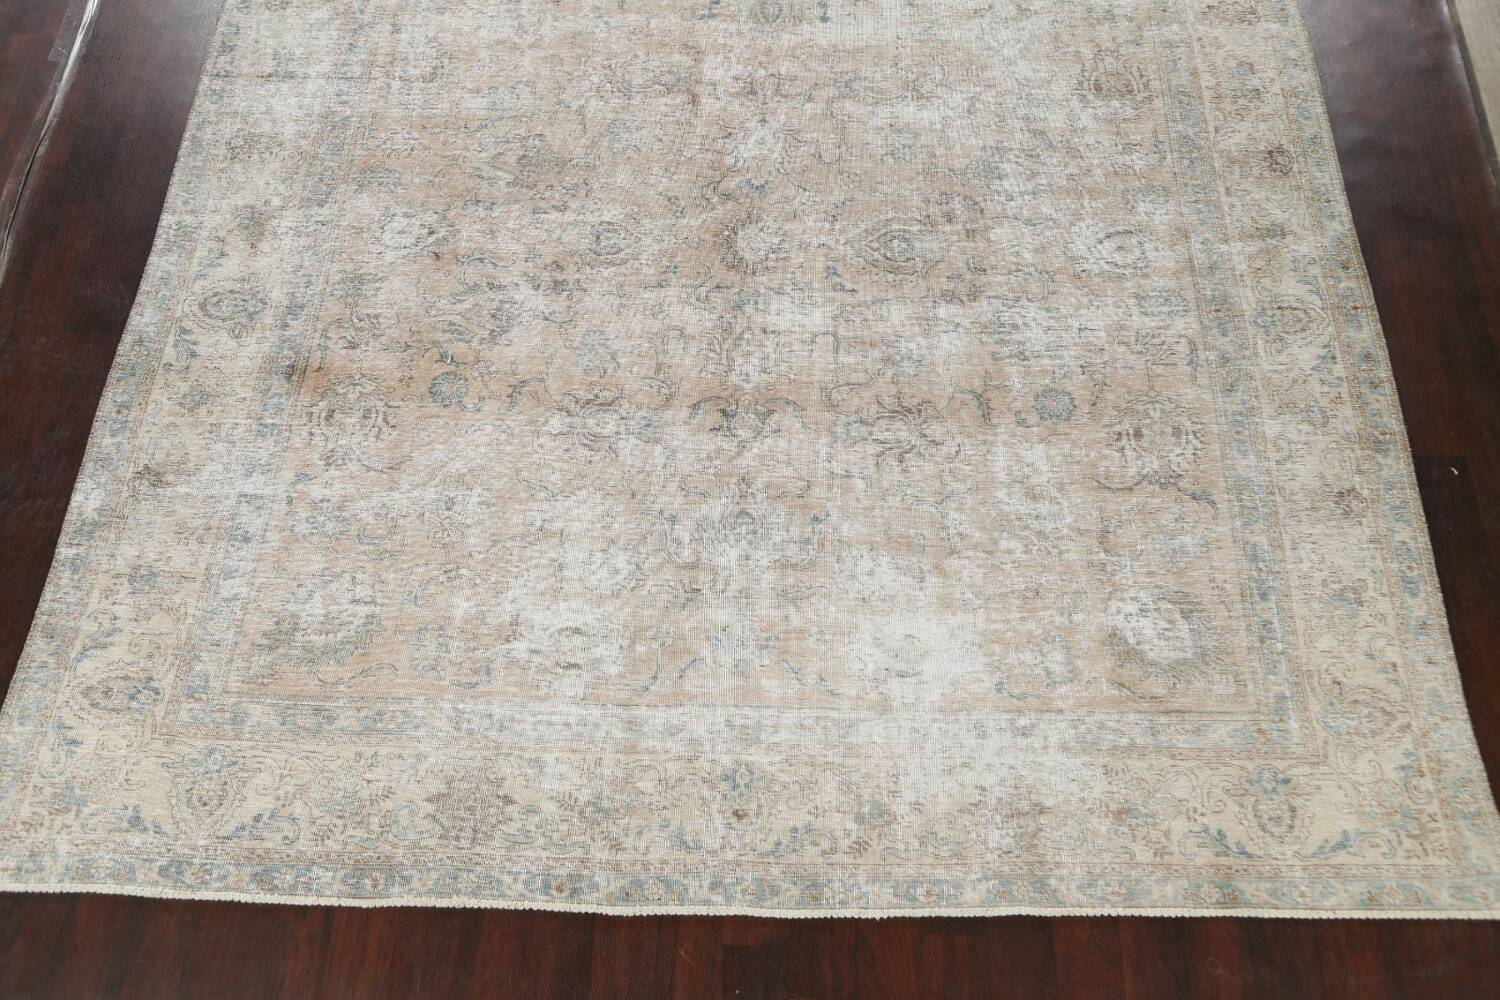 Muted Floral Tabriz Persian Area Rug 10x11 image 8